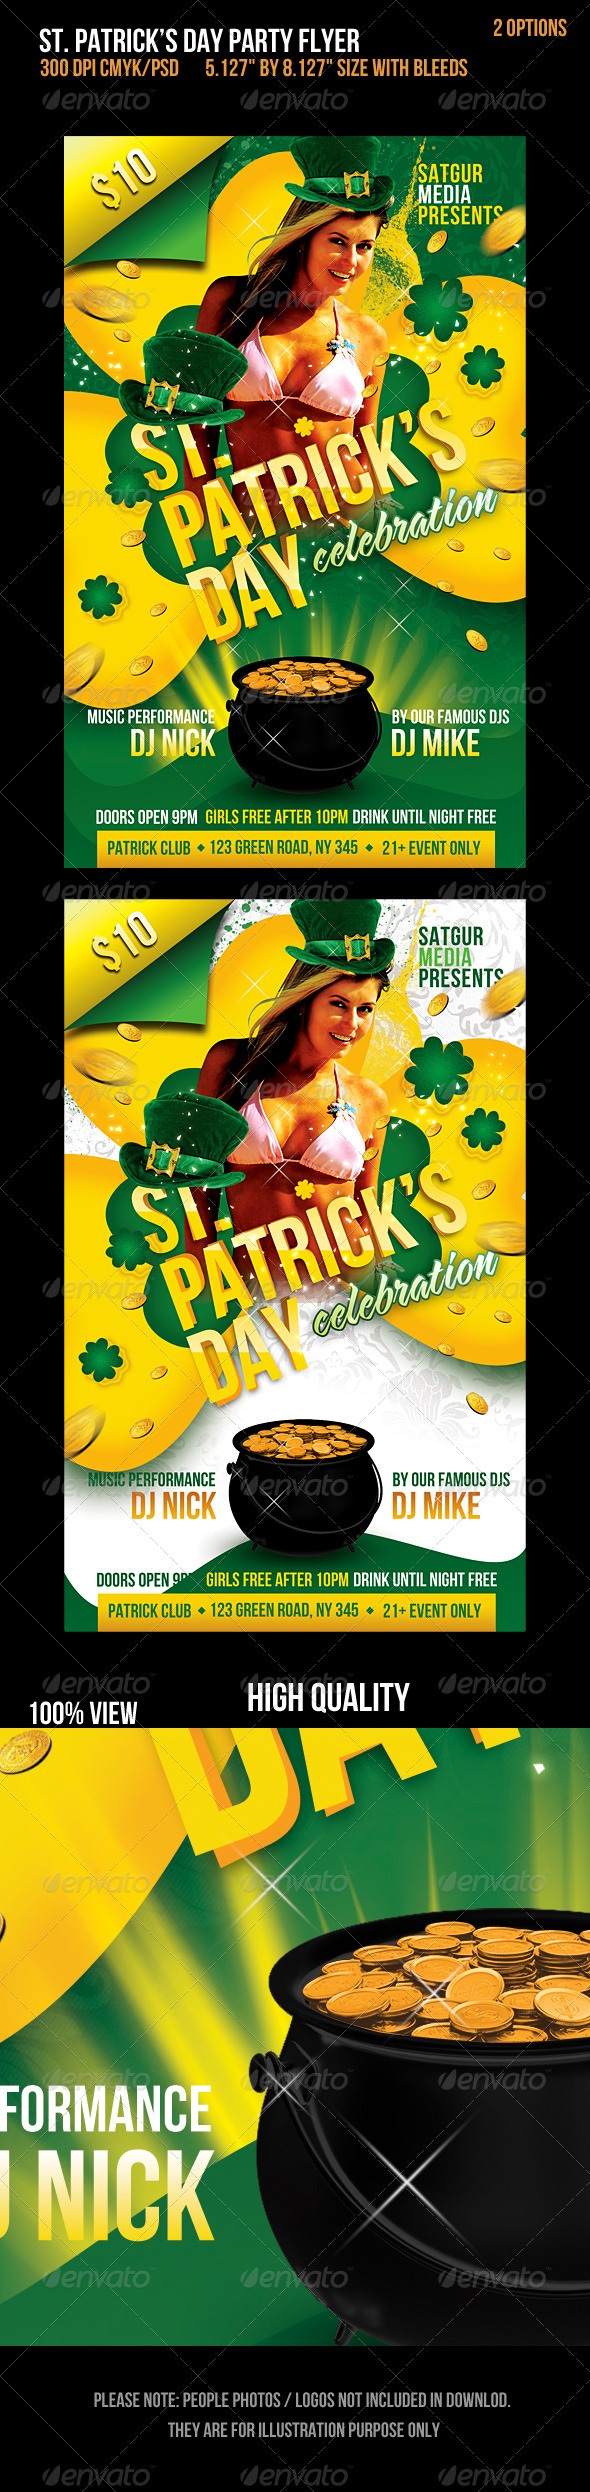 St. Patricks Day Music Party Flyer - Flyers Print Templates